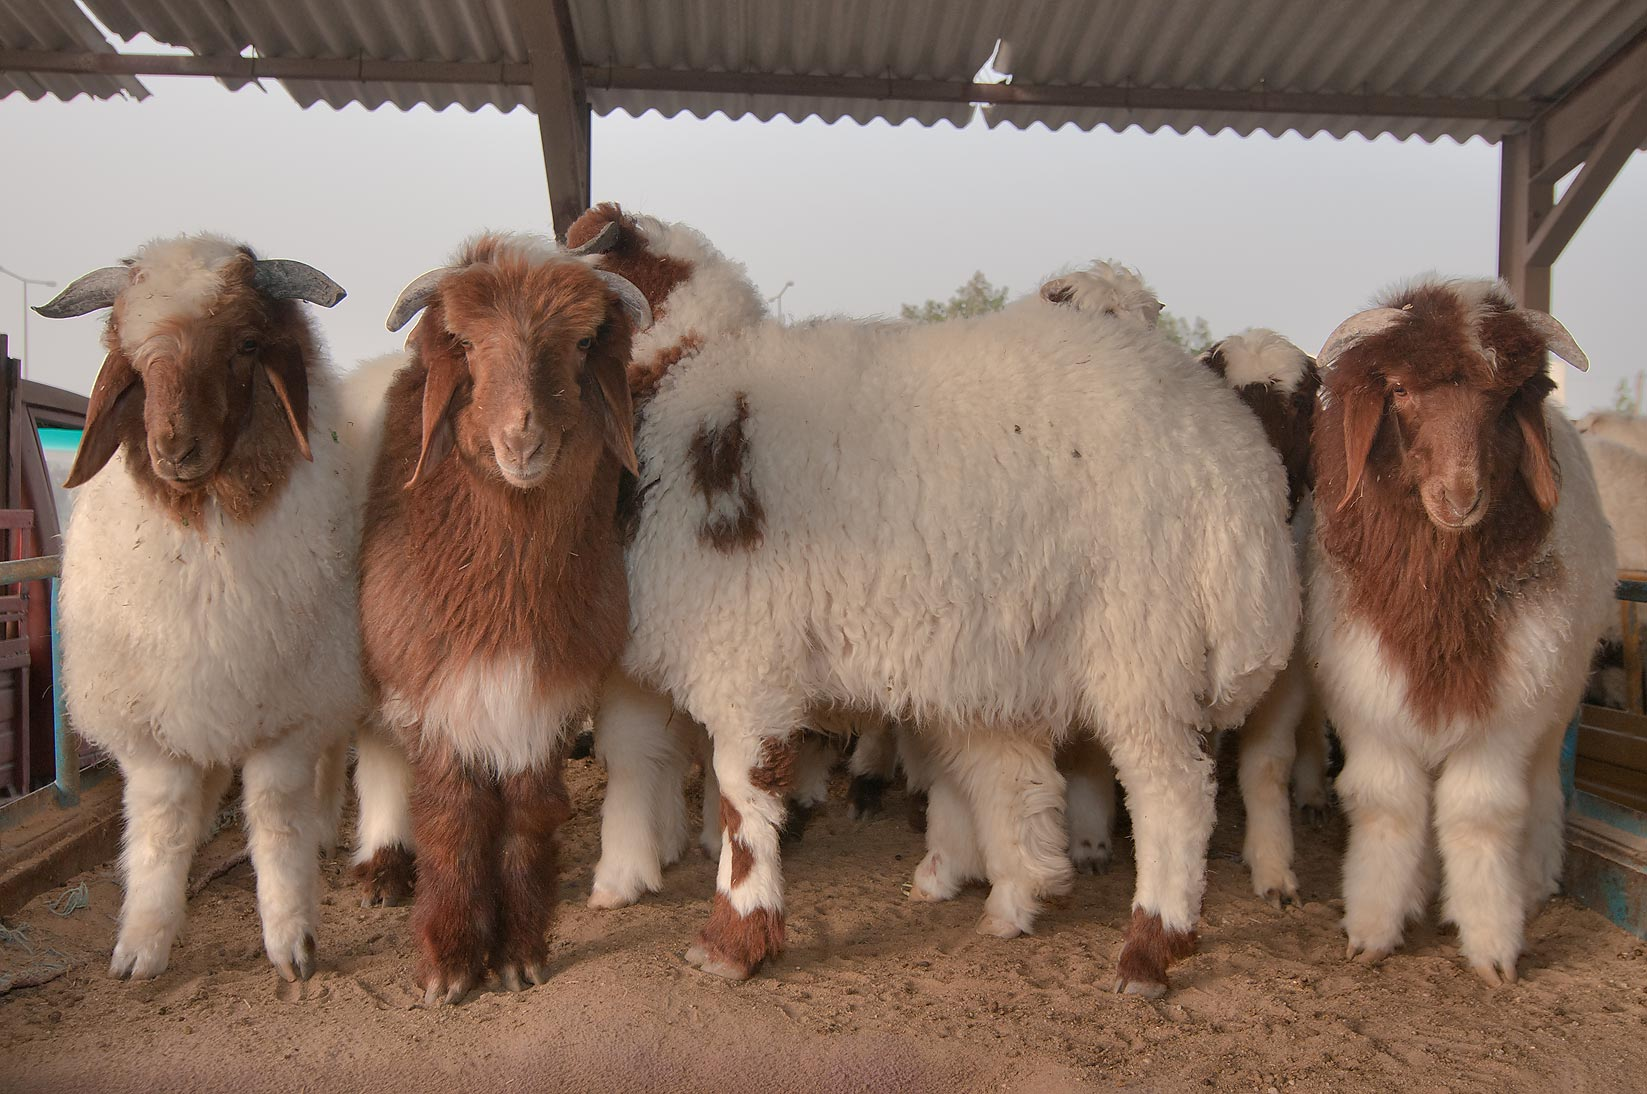 Group of sheep in animal market. Doha, Qatar